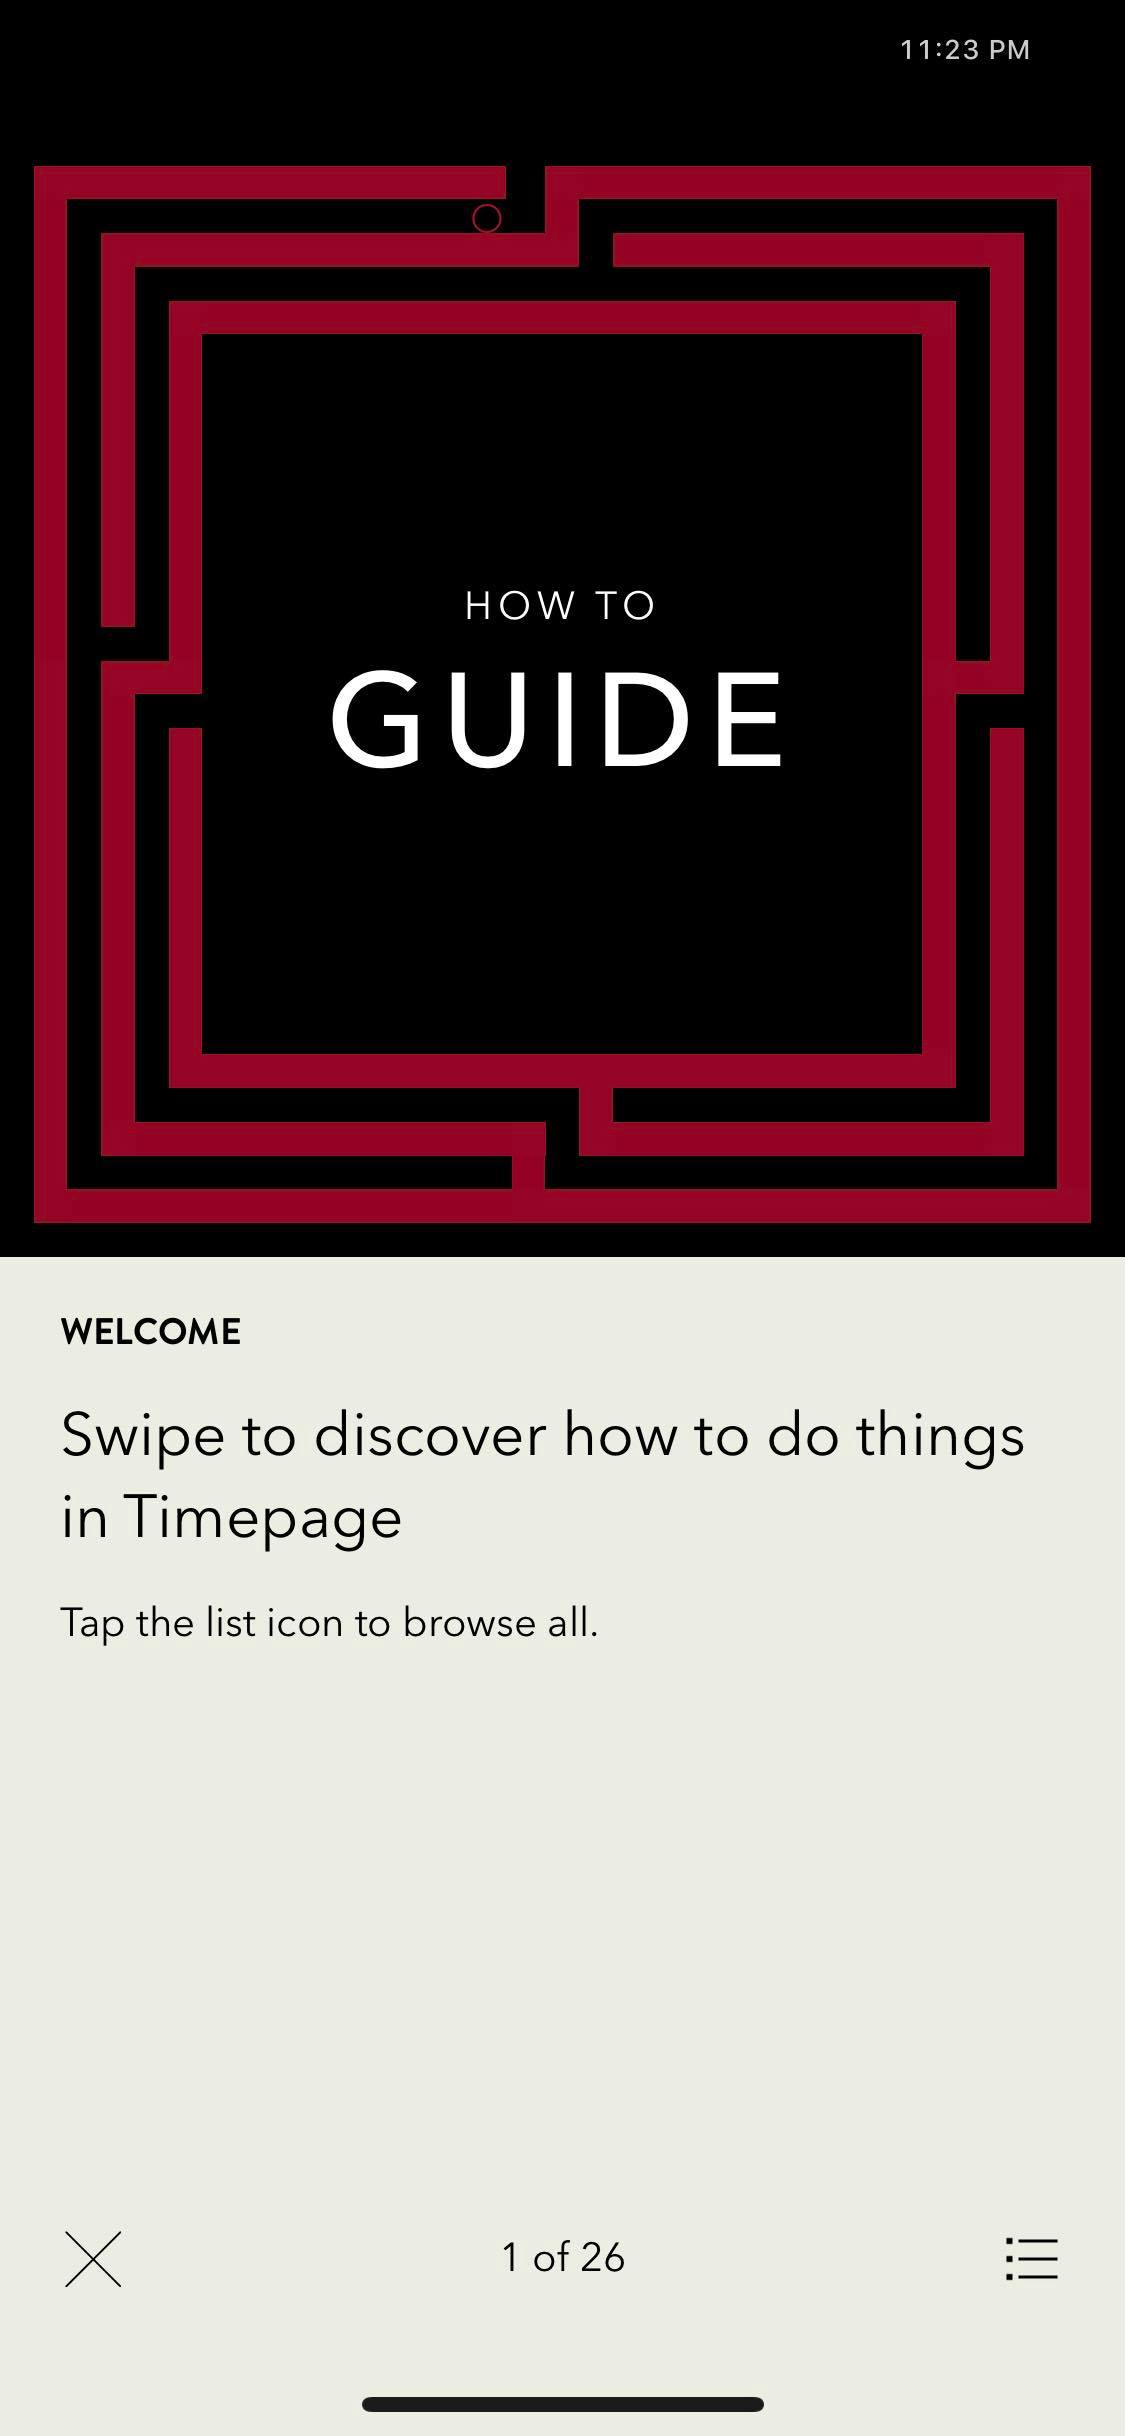 Guide on iOS by Time Page from UIGarage